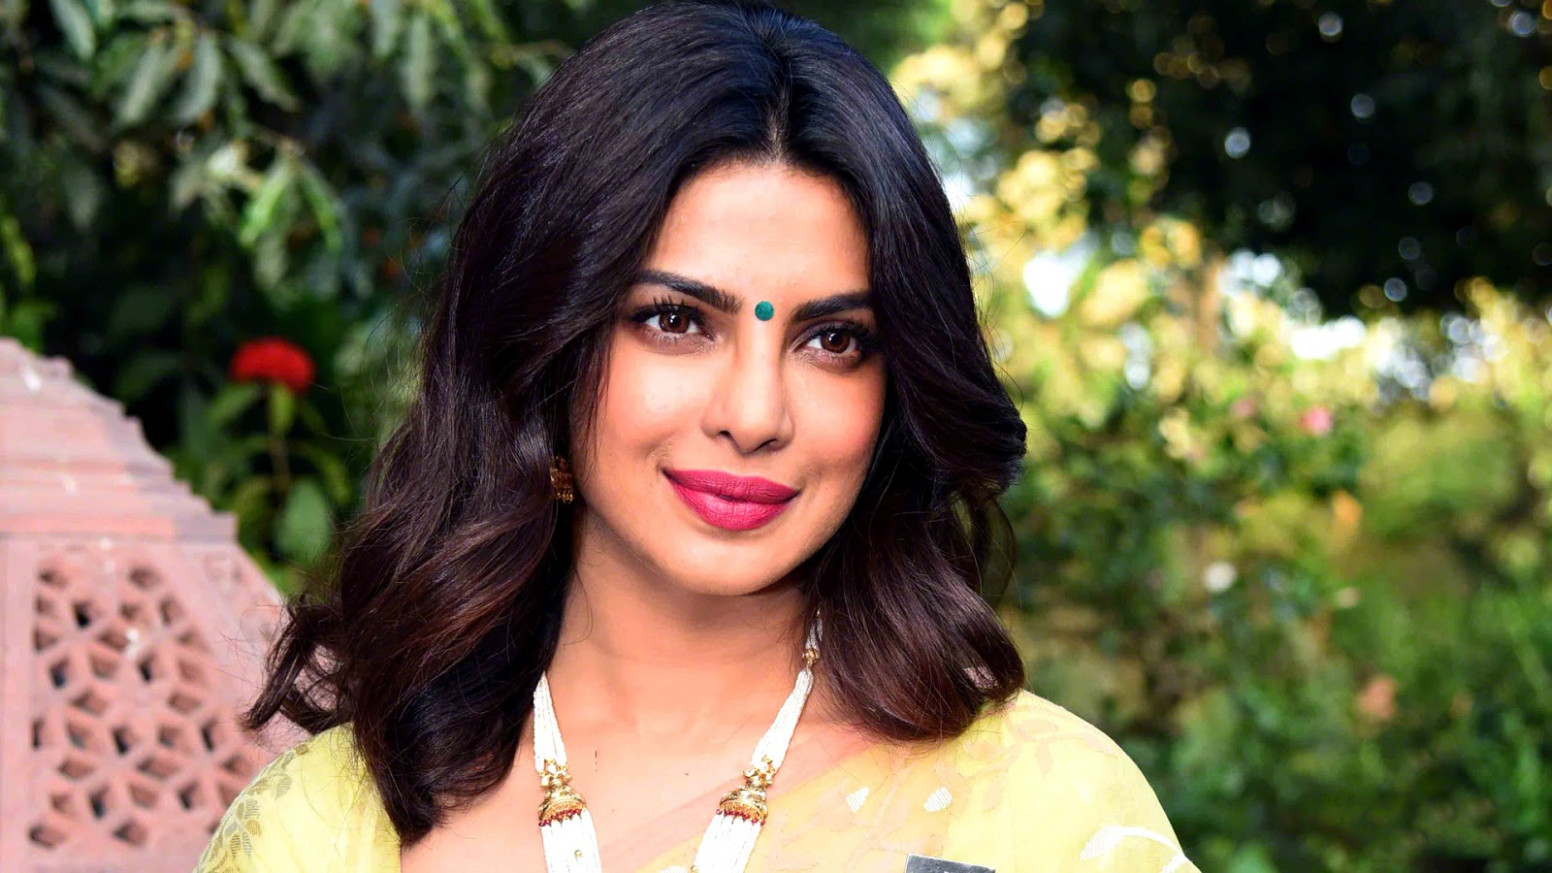 Priyanka Chopra Wallpapers HD Download Free 1080p ...